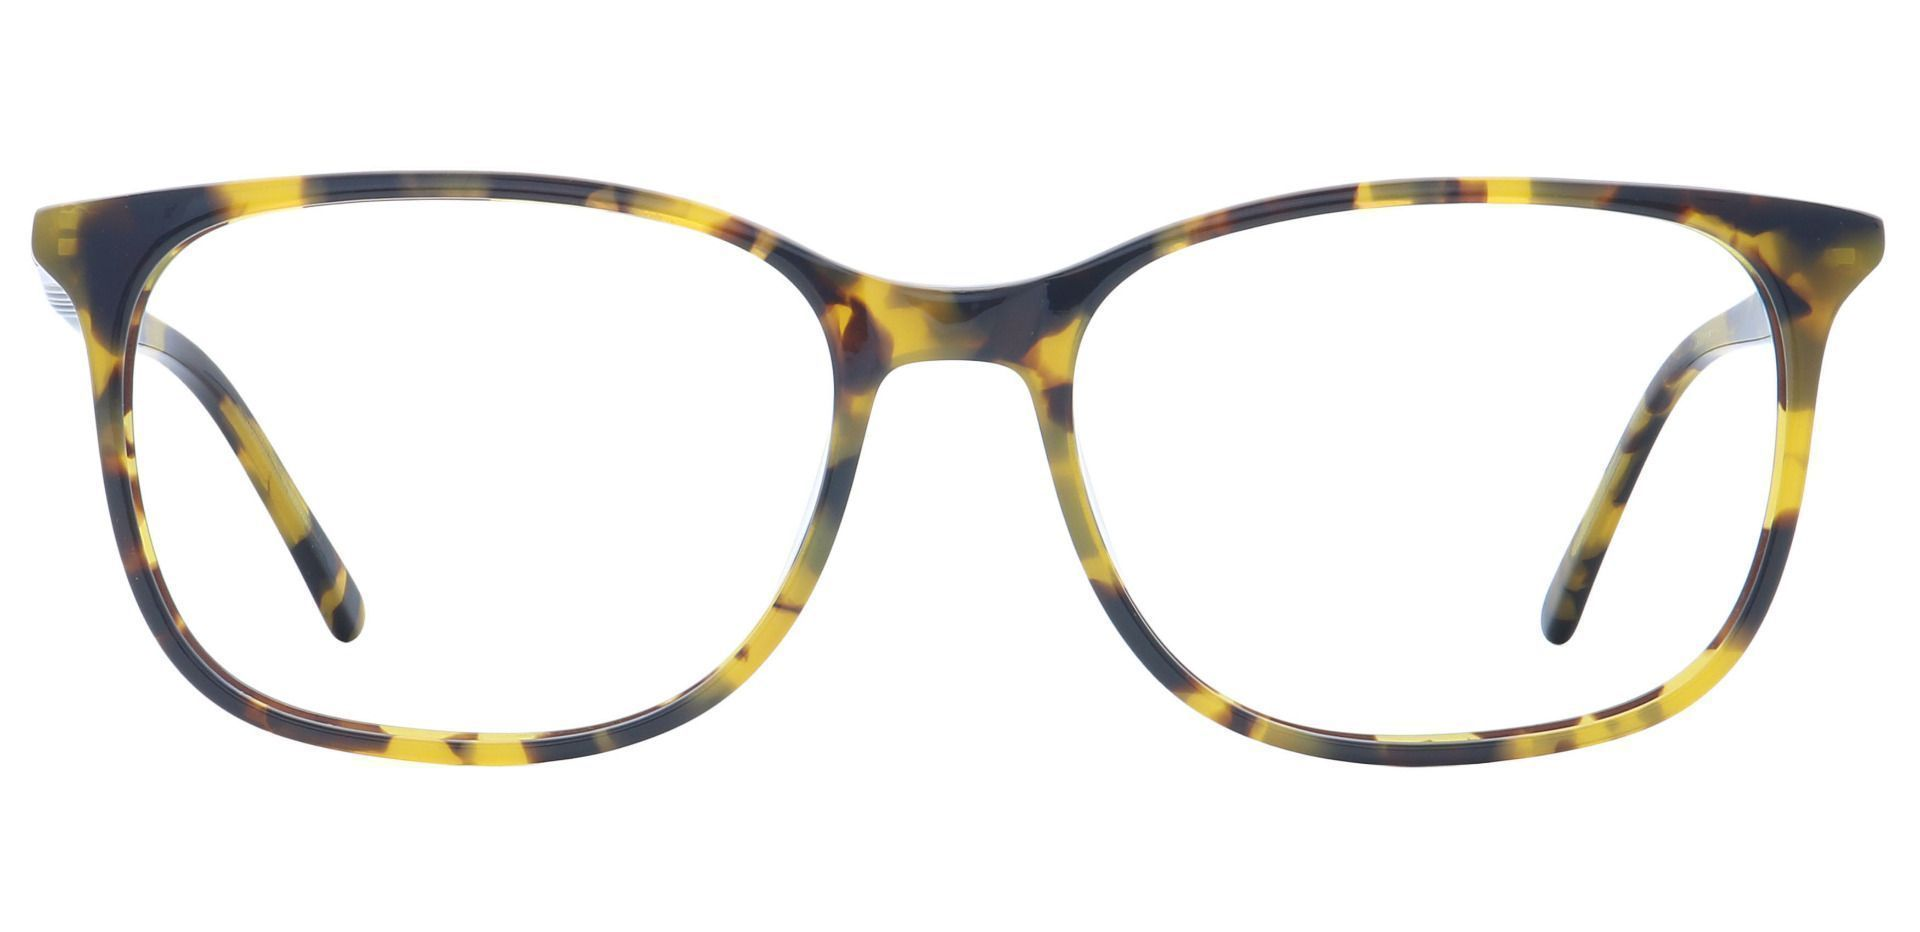 Mason Square Blue Light Blocking Glasses - Brown